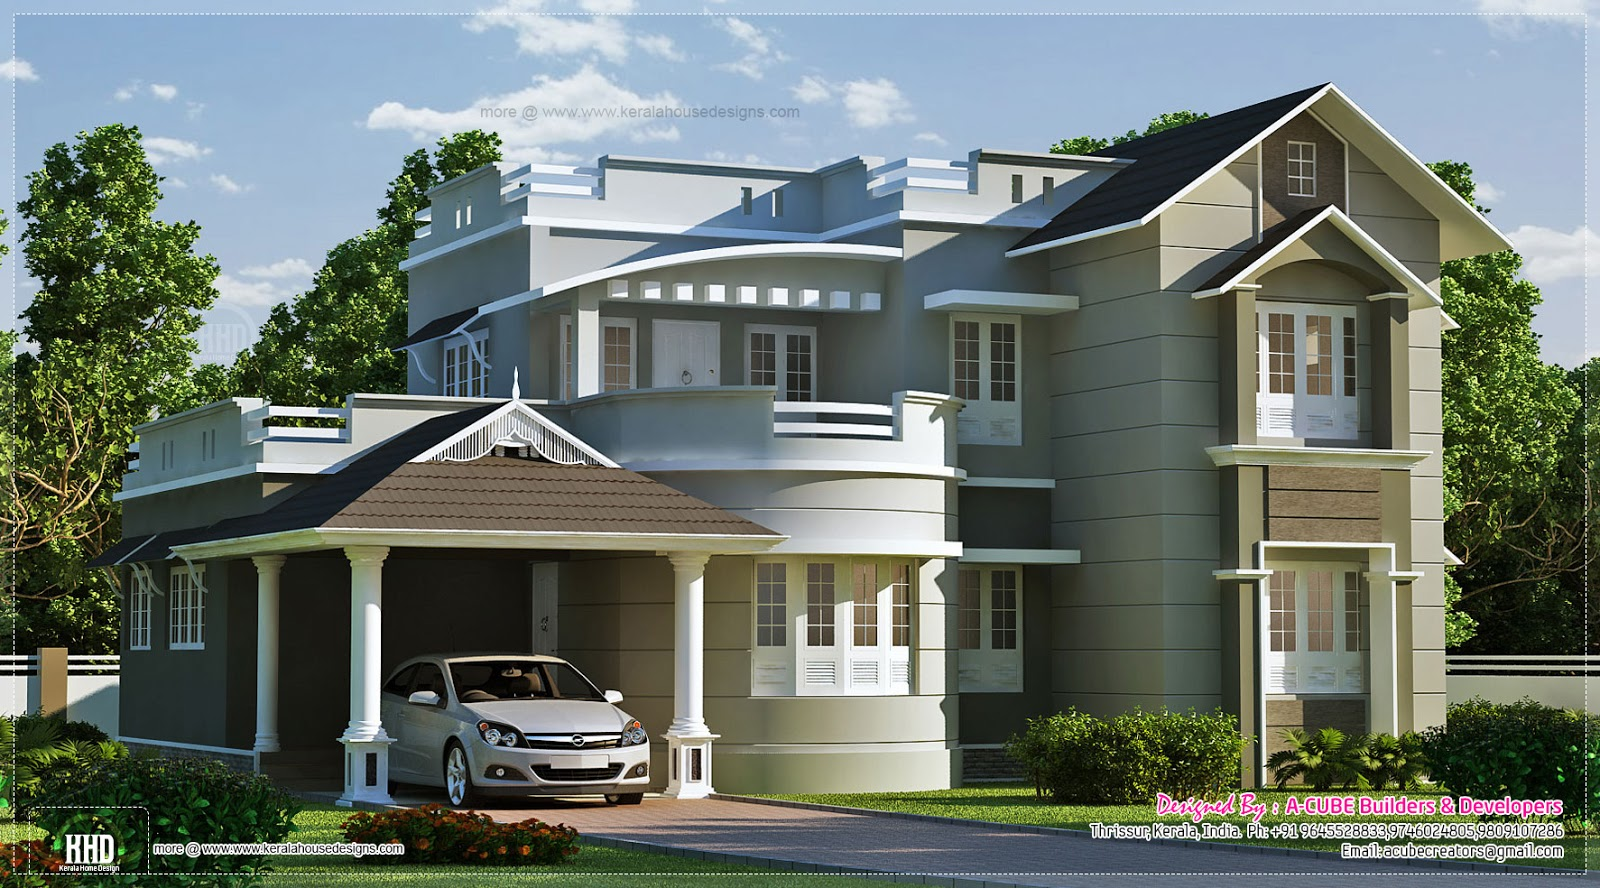 new home designs 18381 hd wallpapers background ForIn Home Designs